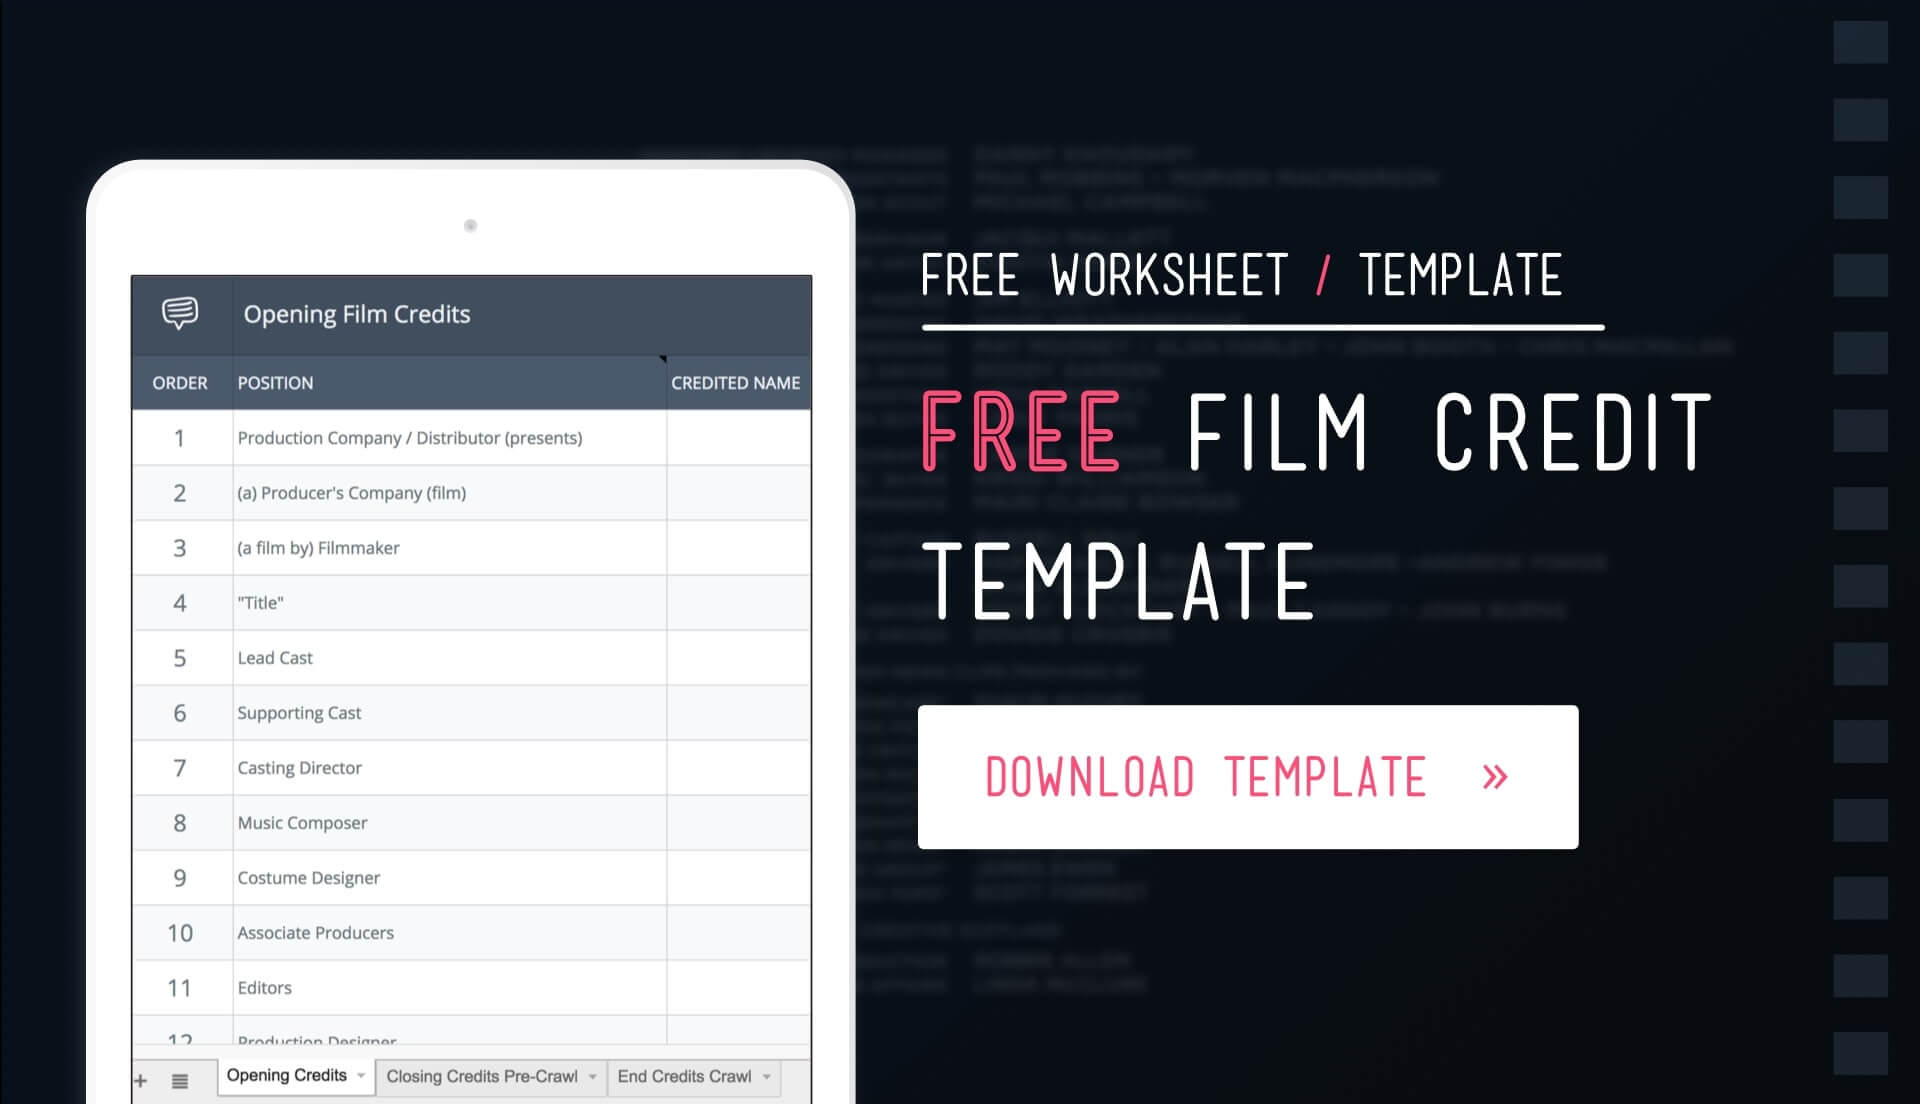 Download Free Film Credits Order Template and Worksheet - Featured - StudioBinder